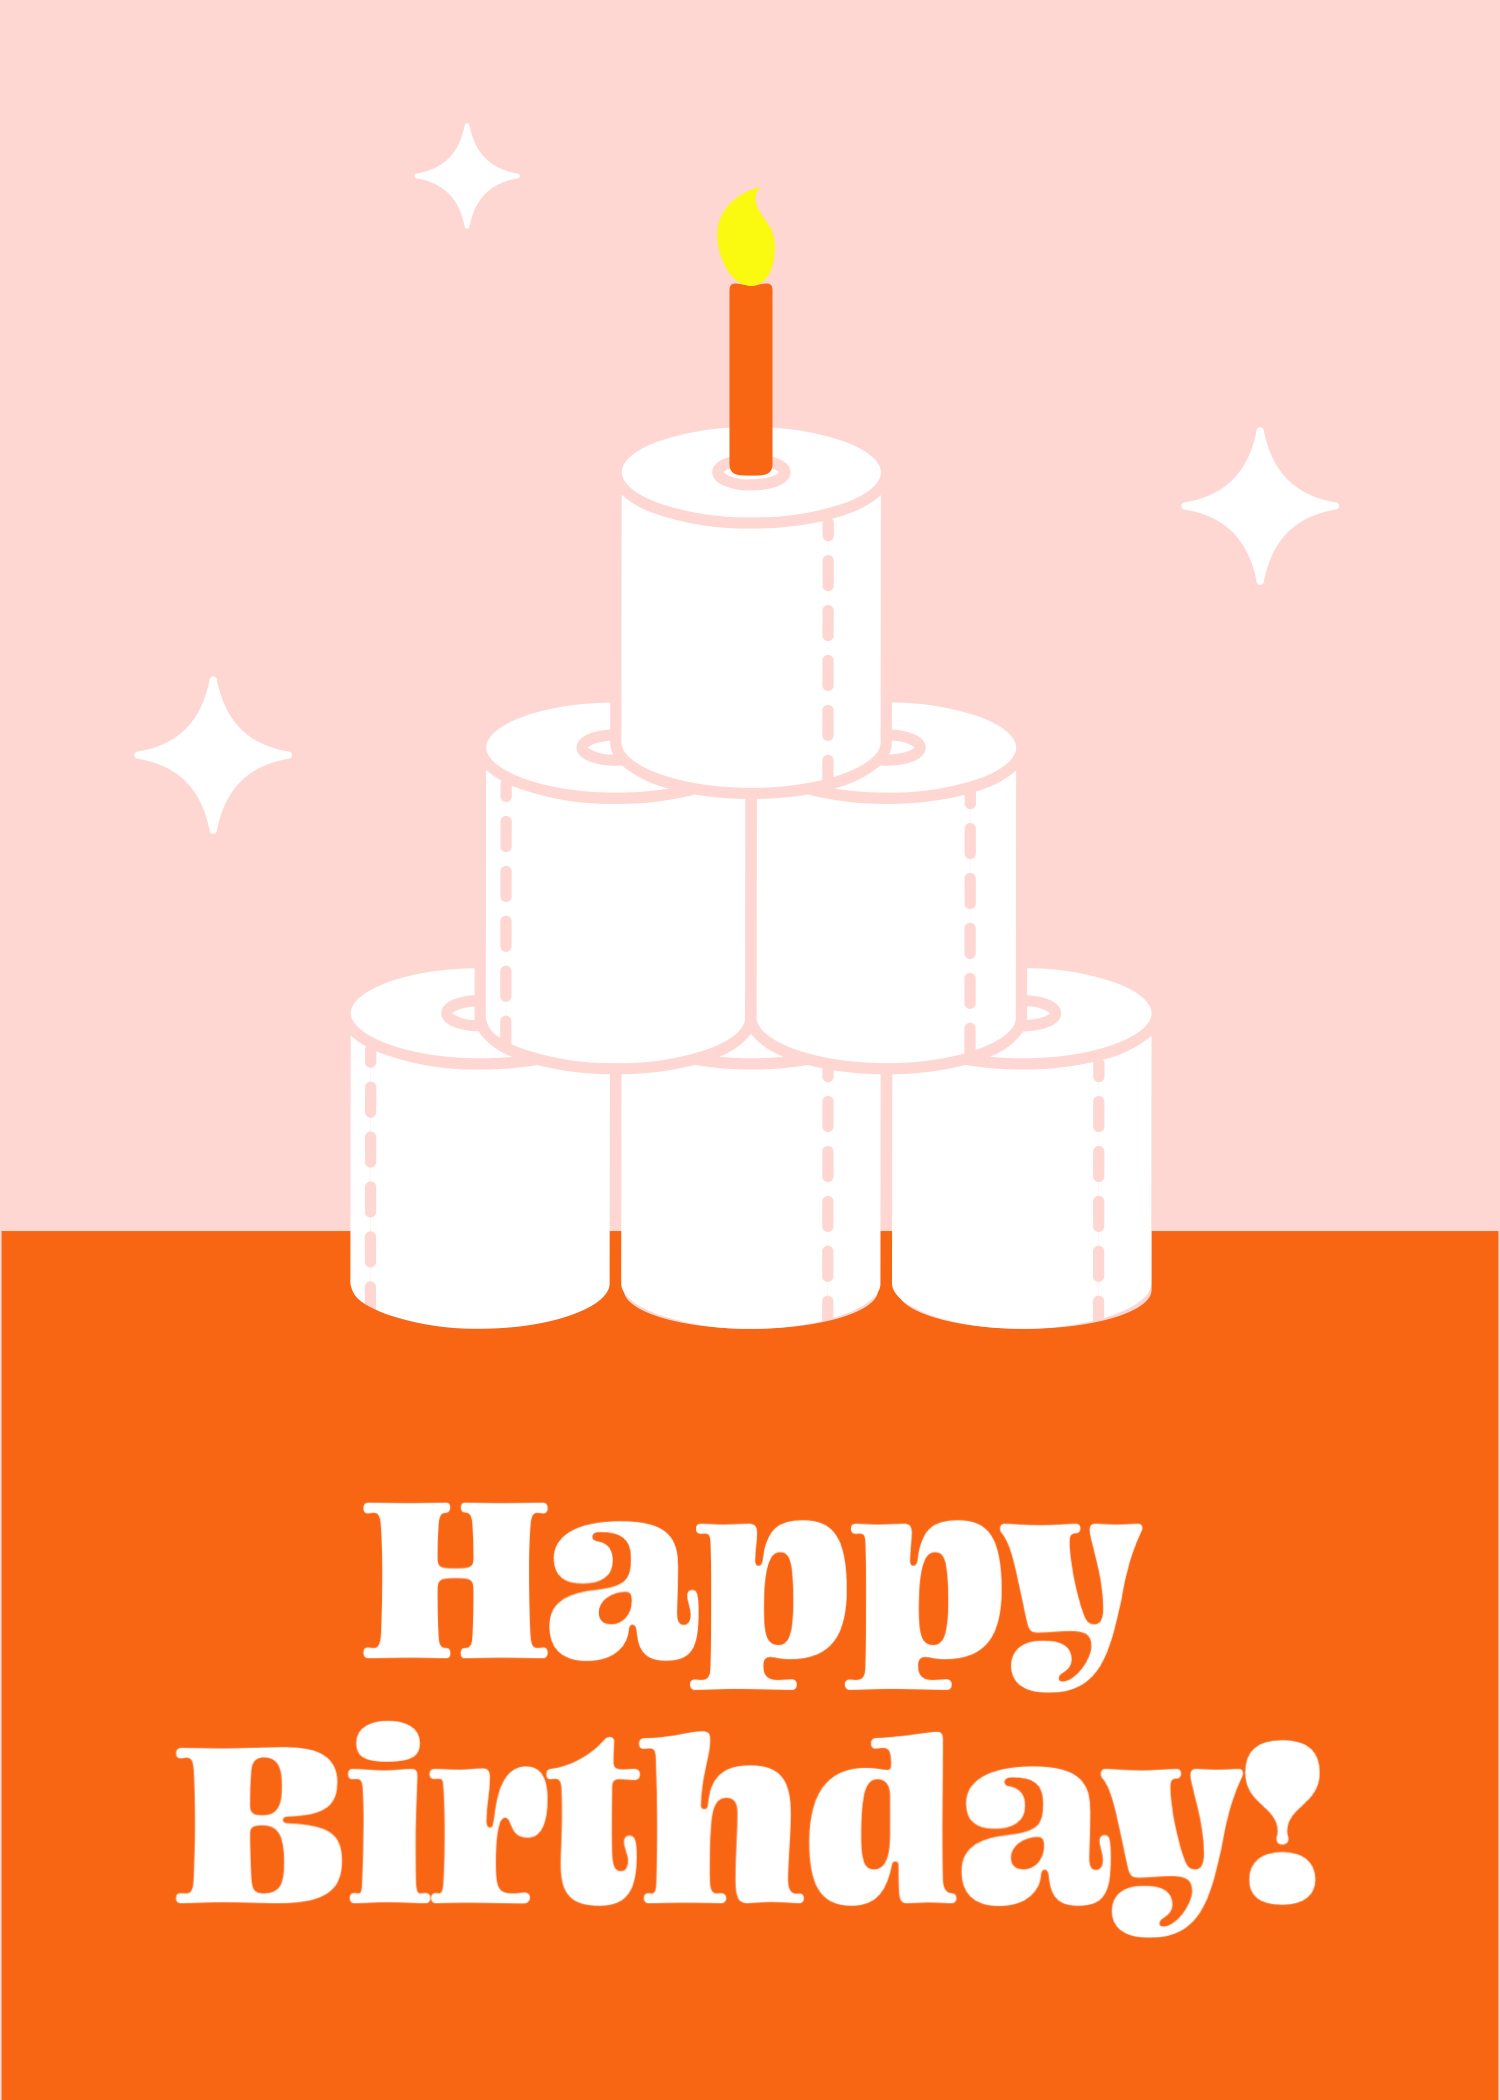 DIY Happy Birthday Card with Templates in 2020 Happy